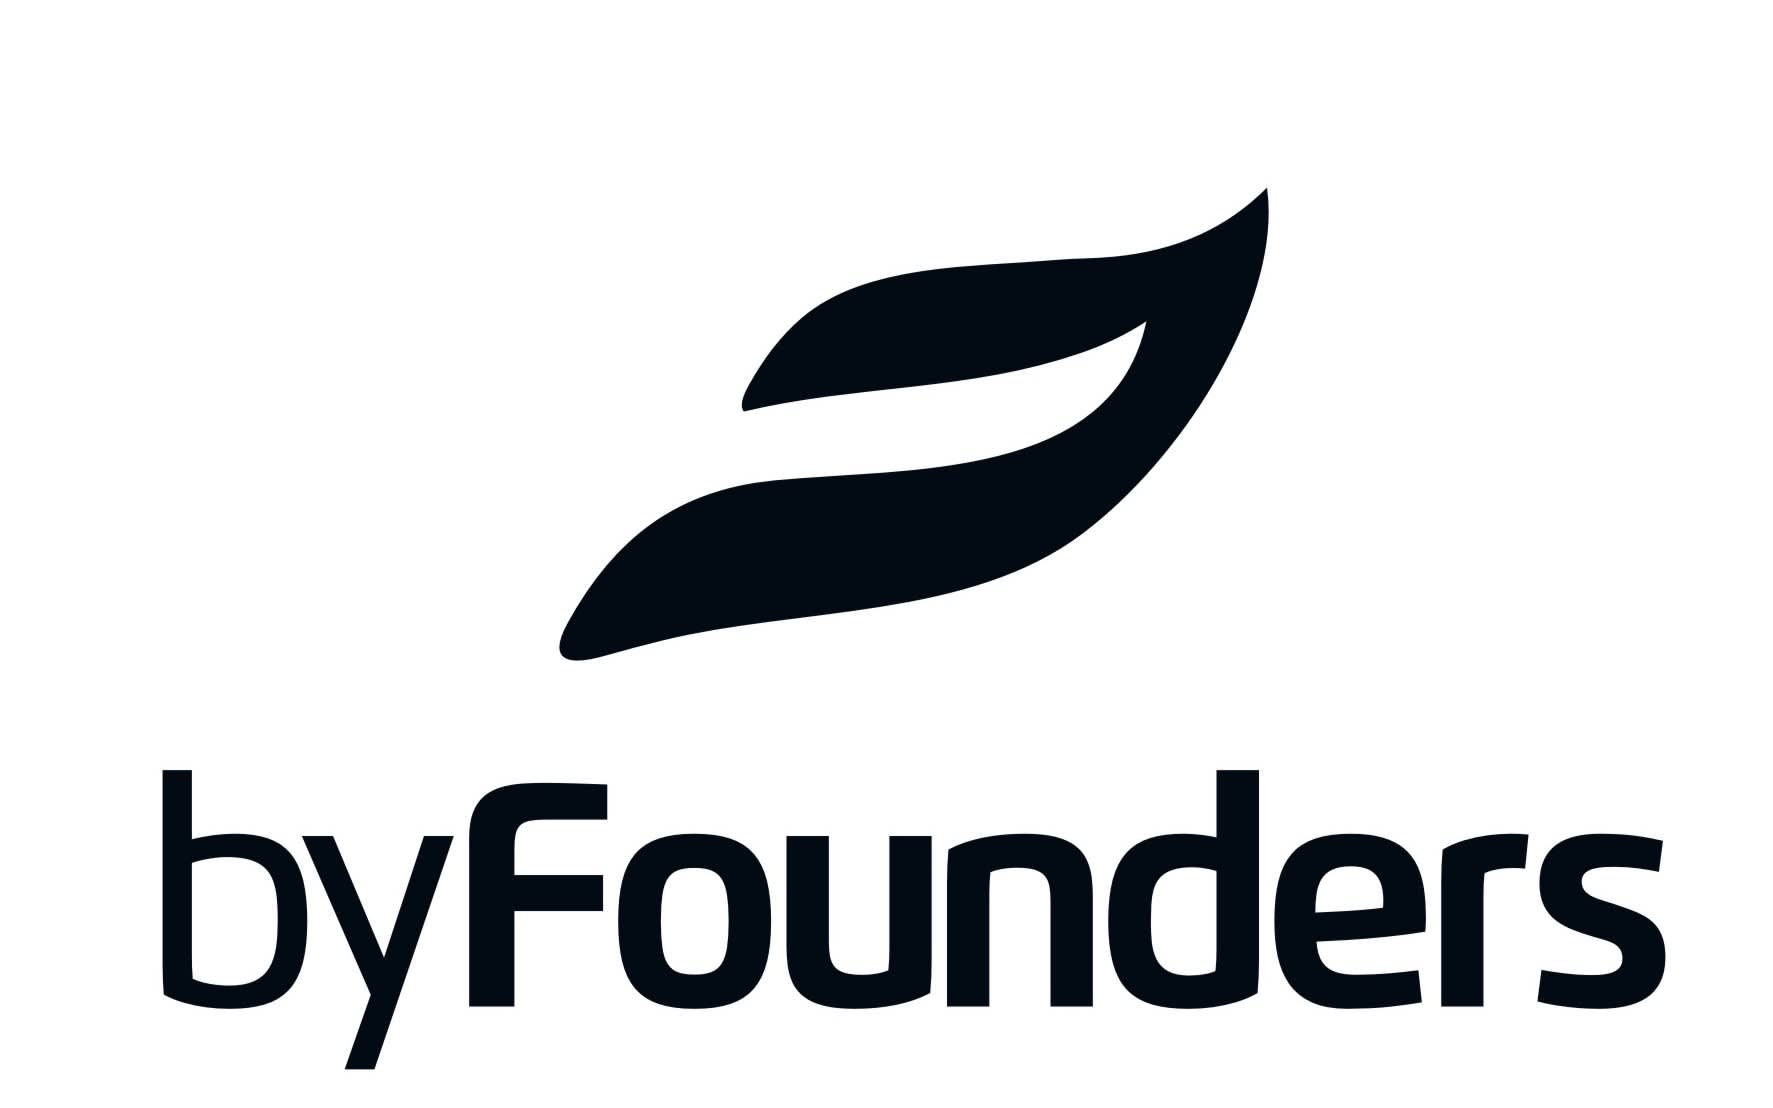 byFounders - Crunchbase Investor Profile & Investments